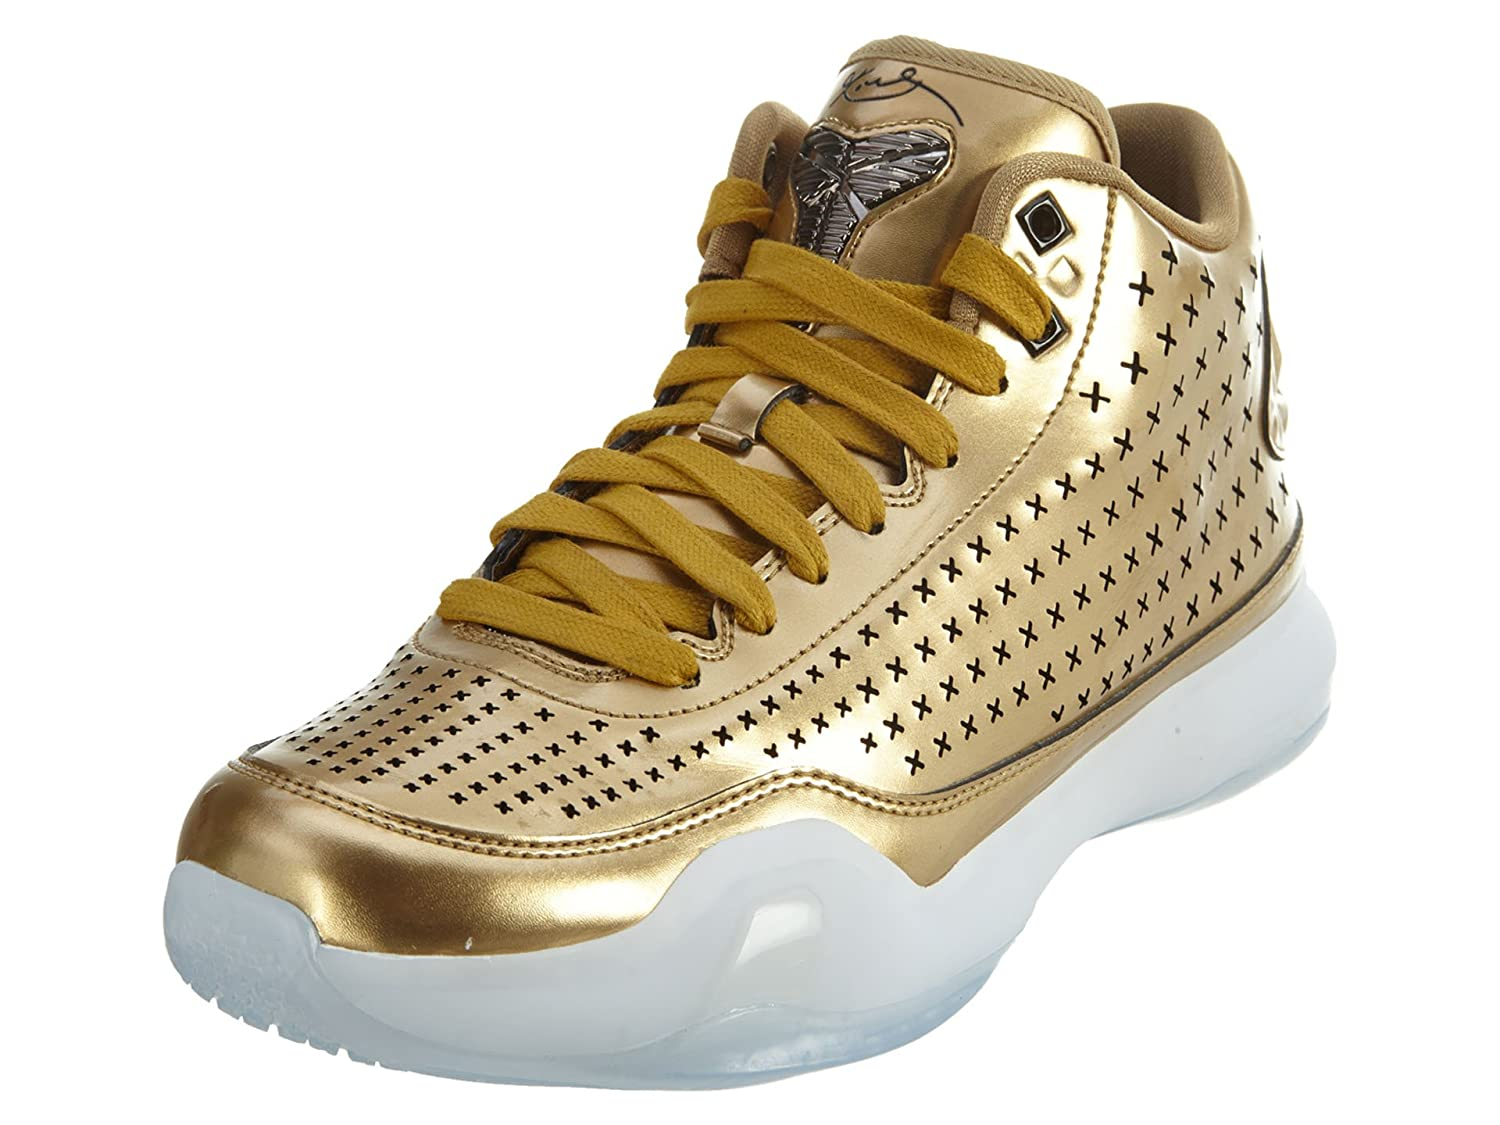 Nike Men s Kobe X Mid EXT, METALLIC GOLD METALLIC GOLD-BLACK, 9.5 M US